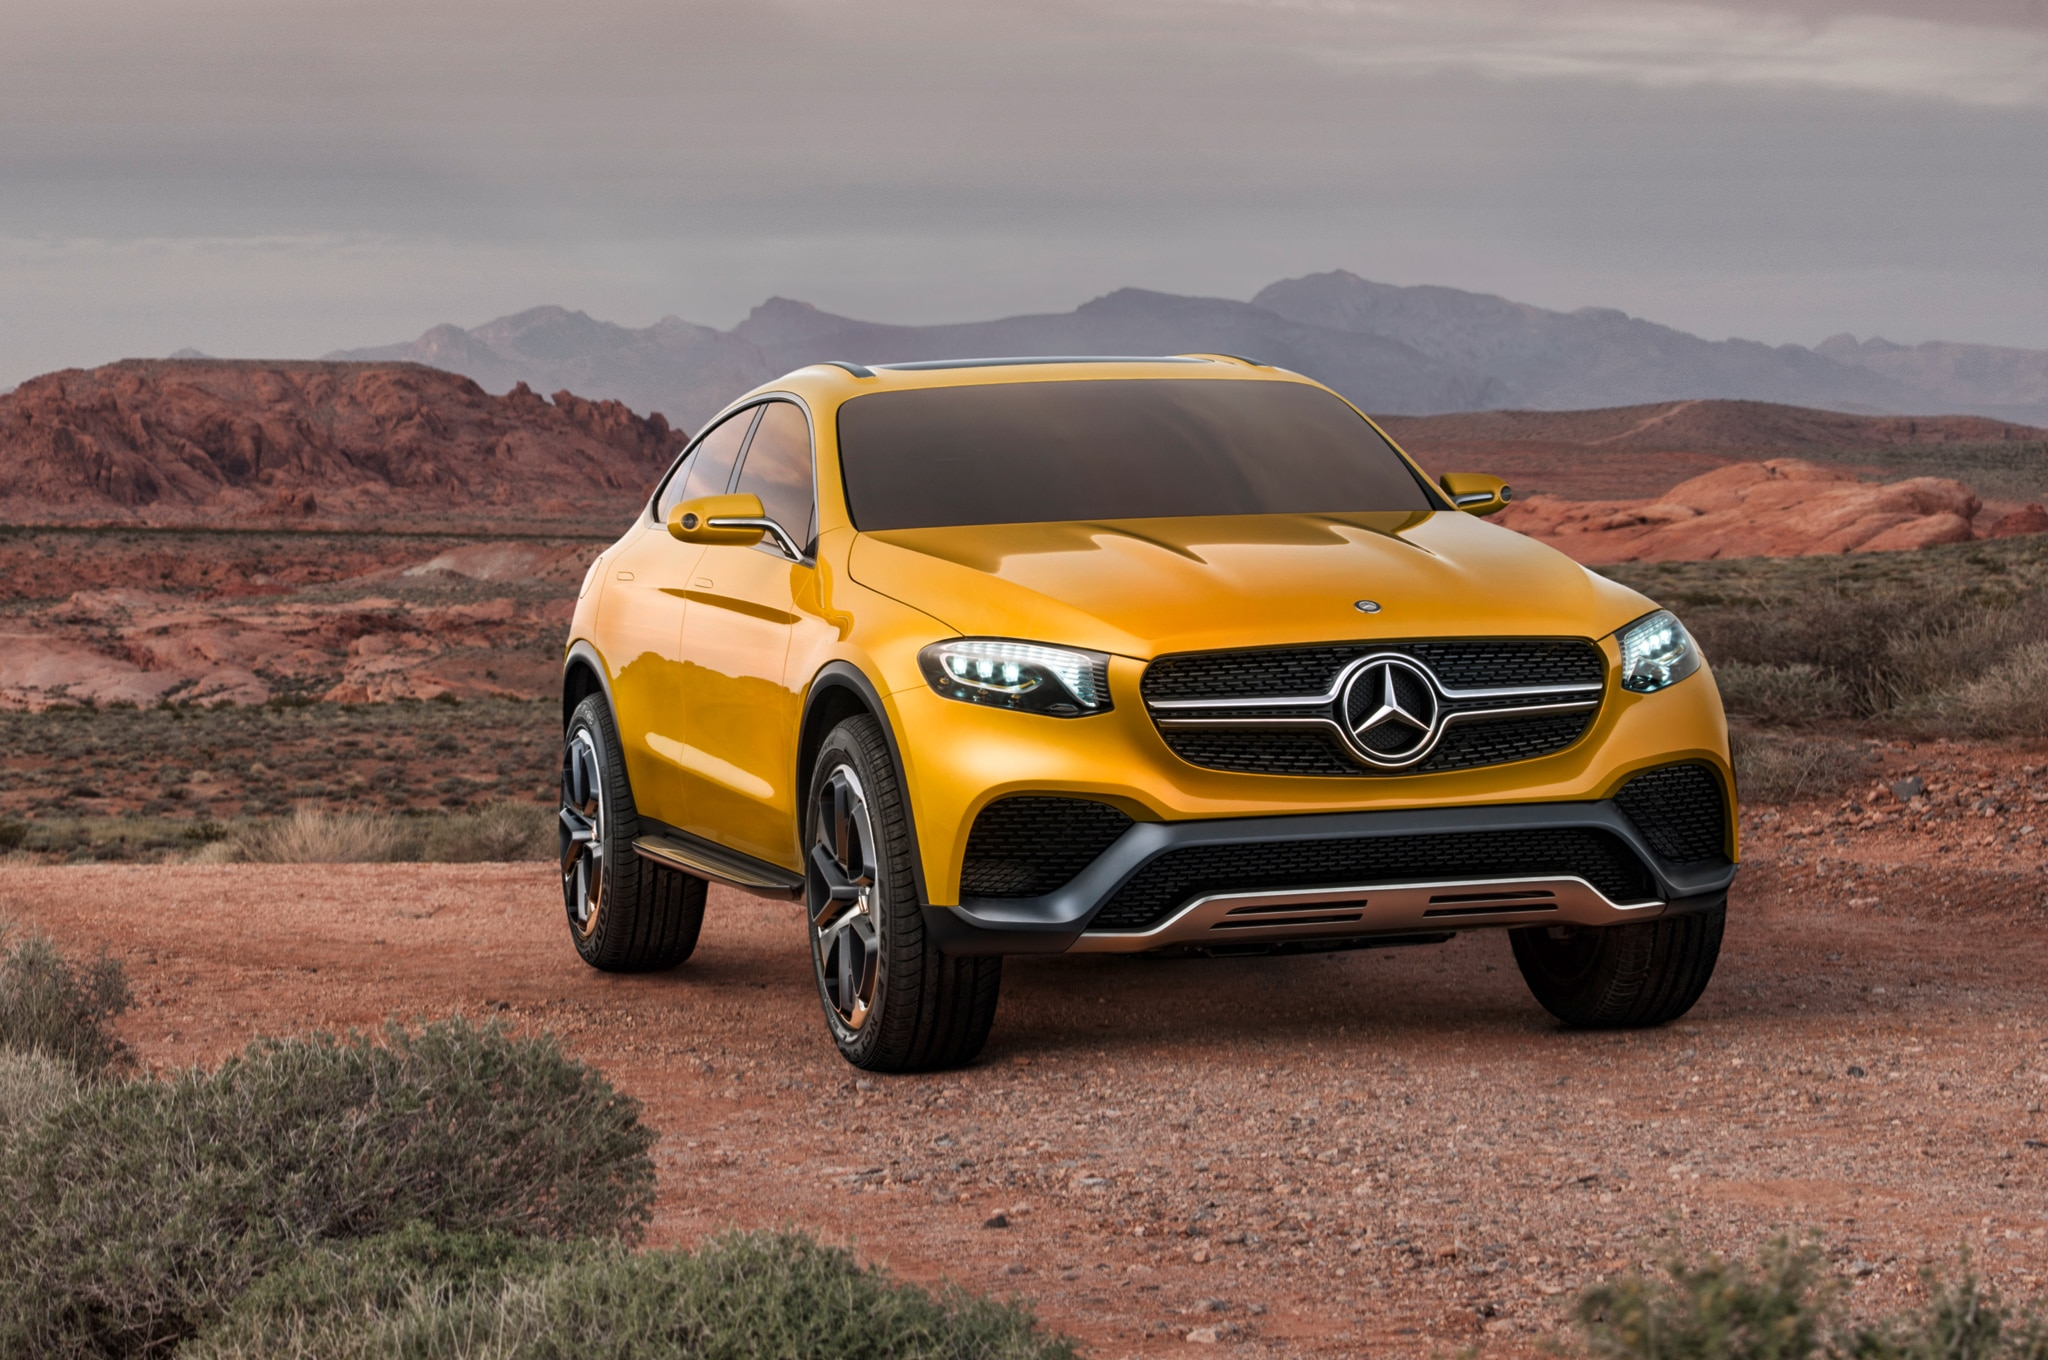 Mercedes Benz Teases New Glc Coupe Ahead Of New York Debut